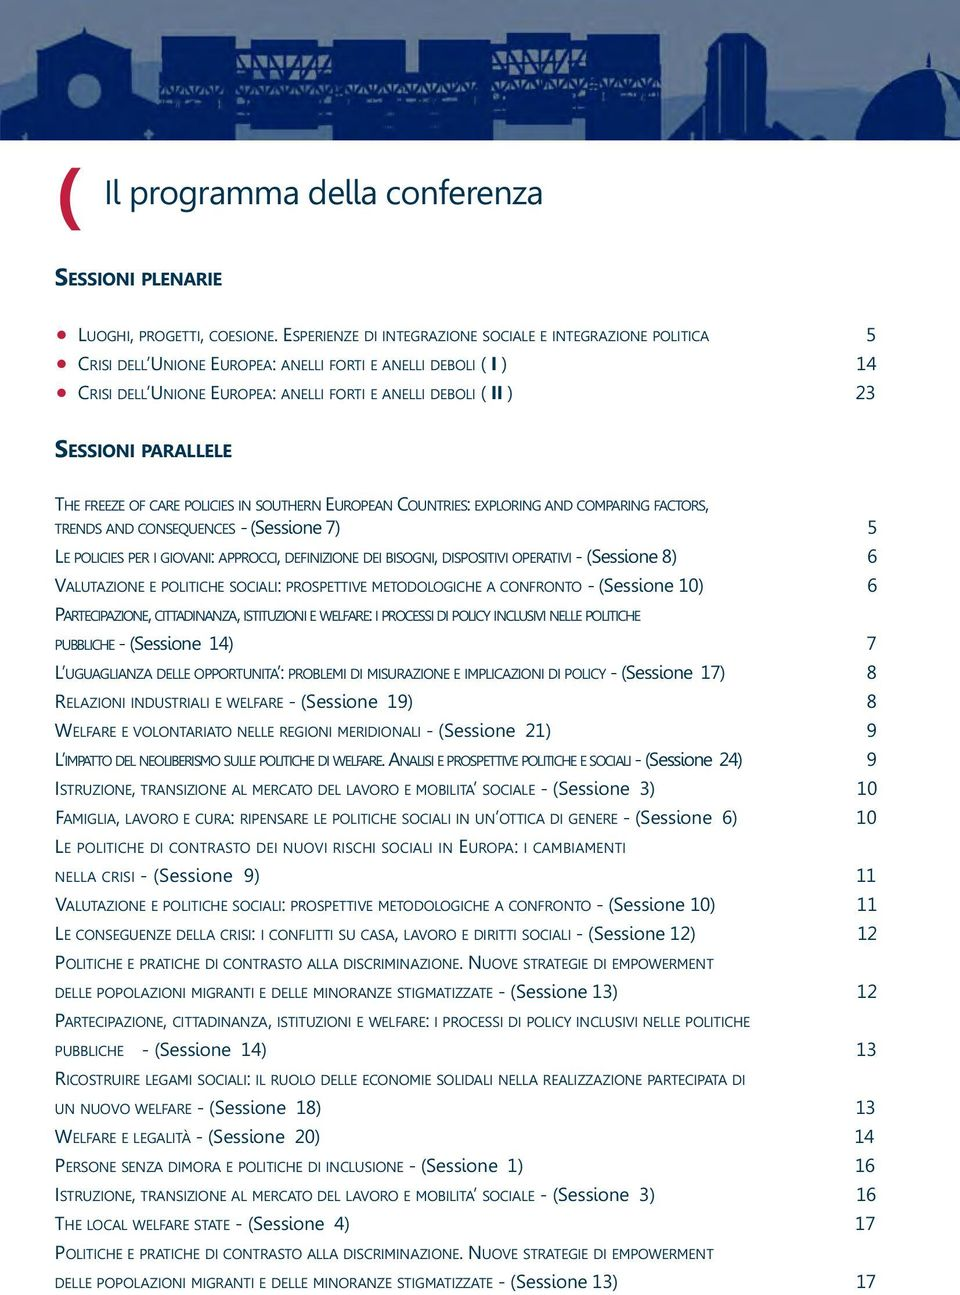 SESSIONI PARALLELE THE FREEZE OF CARE POLICIES IN SOUTHERN EUROPEAN COUNTRIES: EXPLORING AND COMPARING FACTORS, TRENDS AND CONSEQUENCES - (Sessione 7) 5 LE POLICIES PER I GIOVANI: APPROCCI,